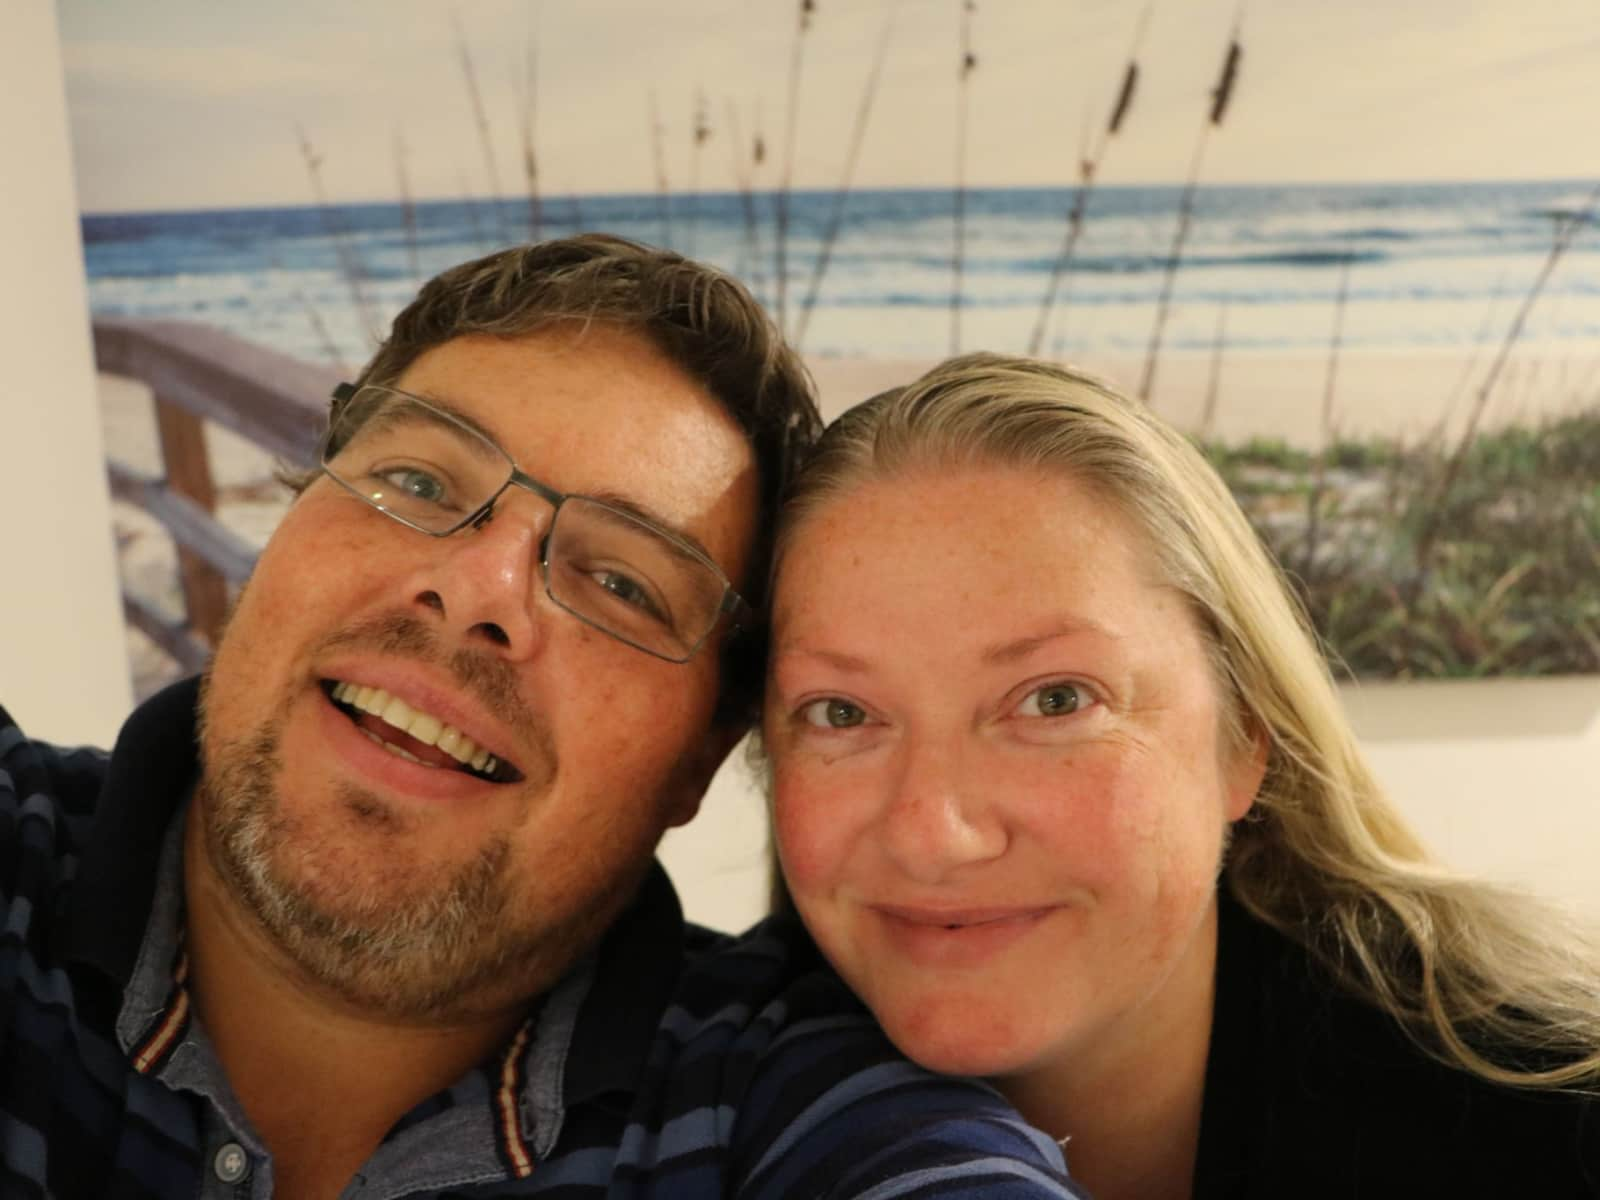 Sally & Paul from Forestville, New South Wales, Australia